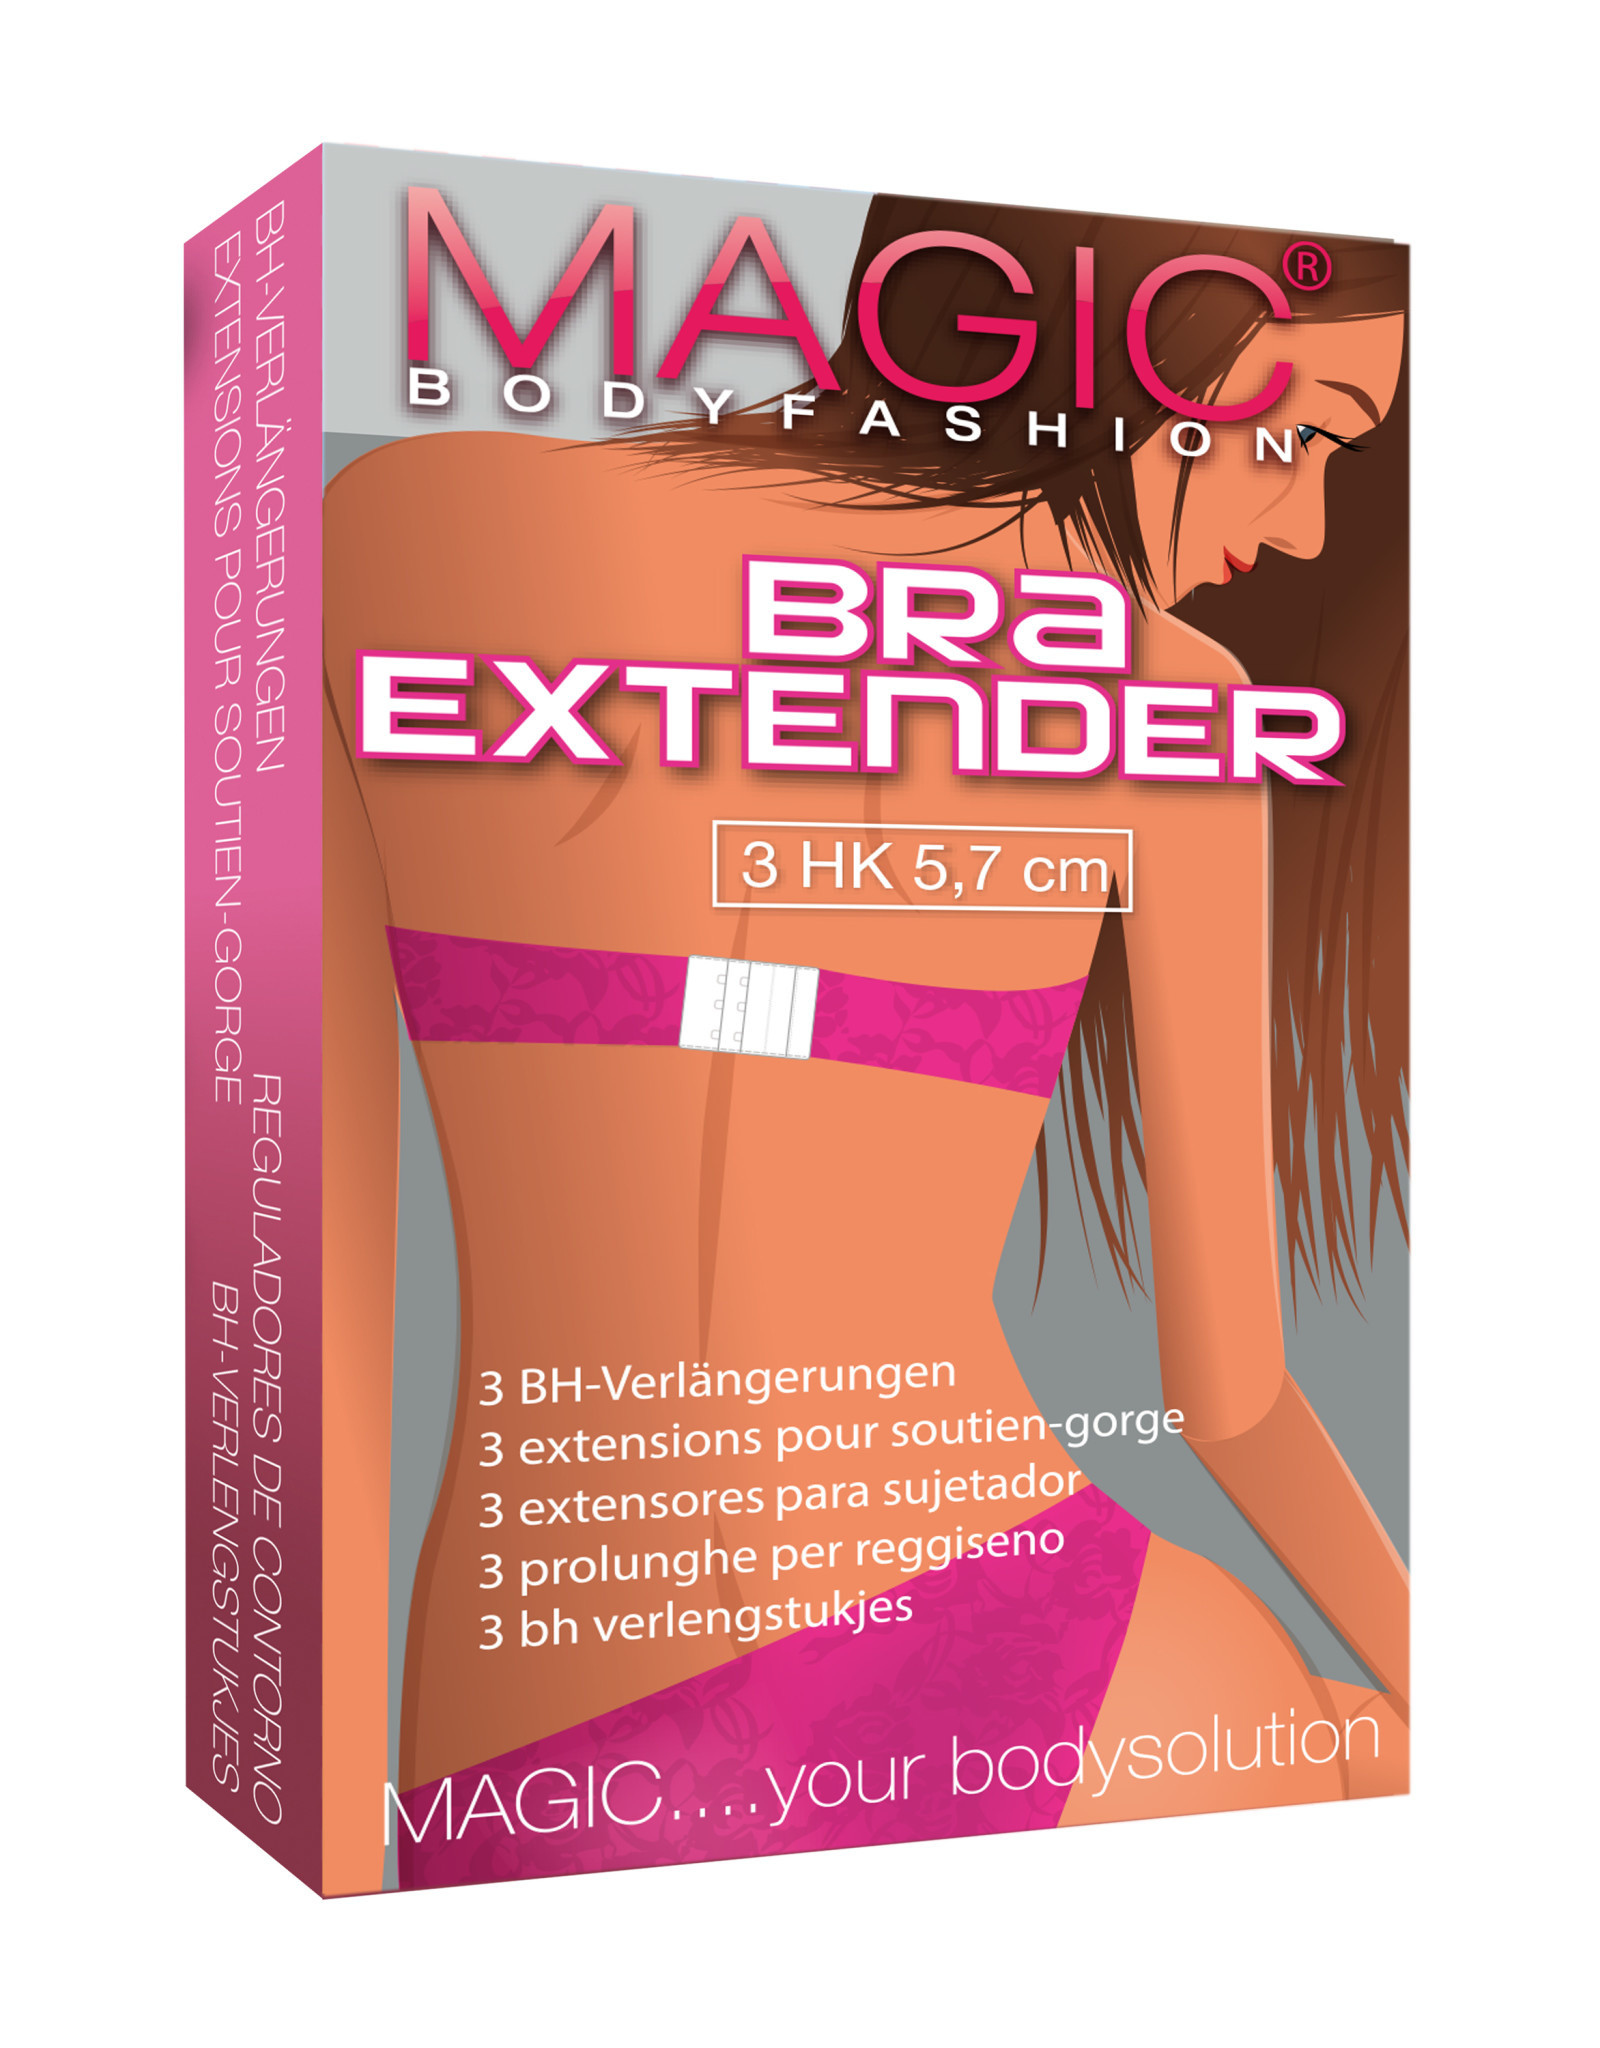 Magic Bodyfashion Magic Accessories - Bra Extender